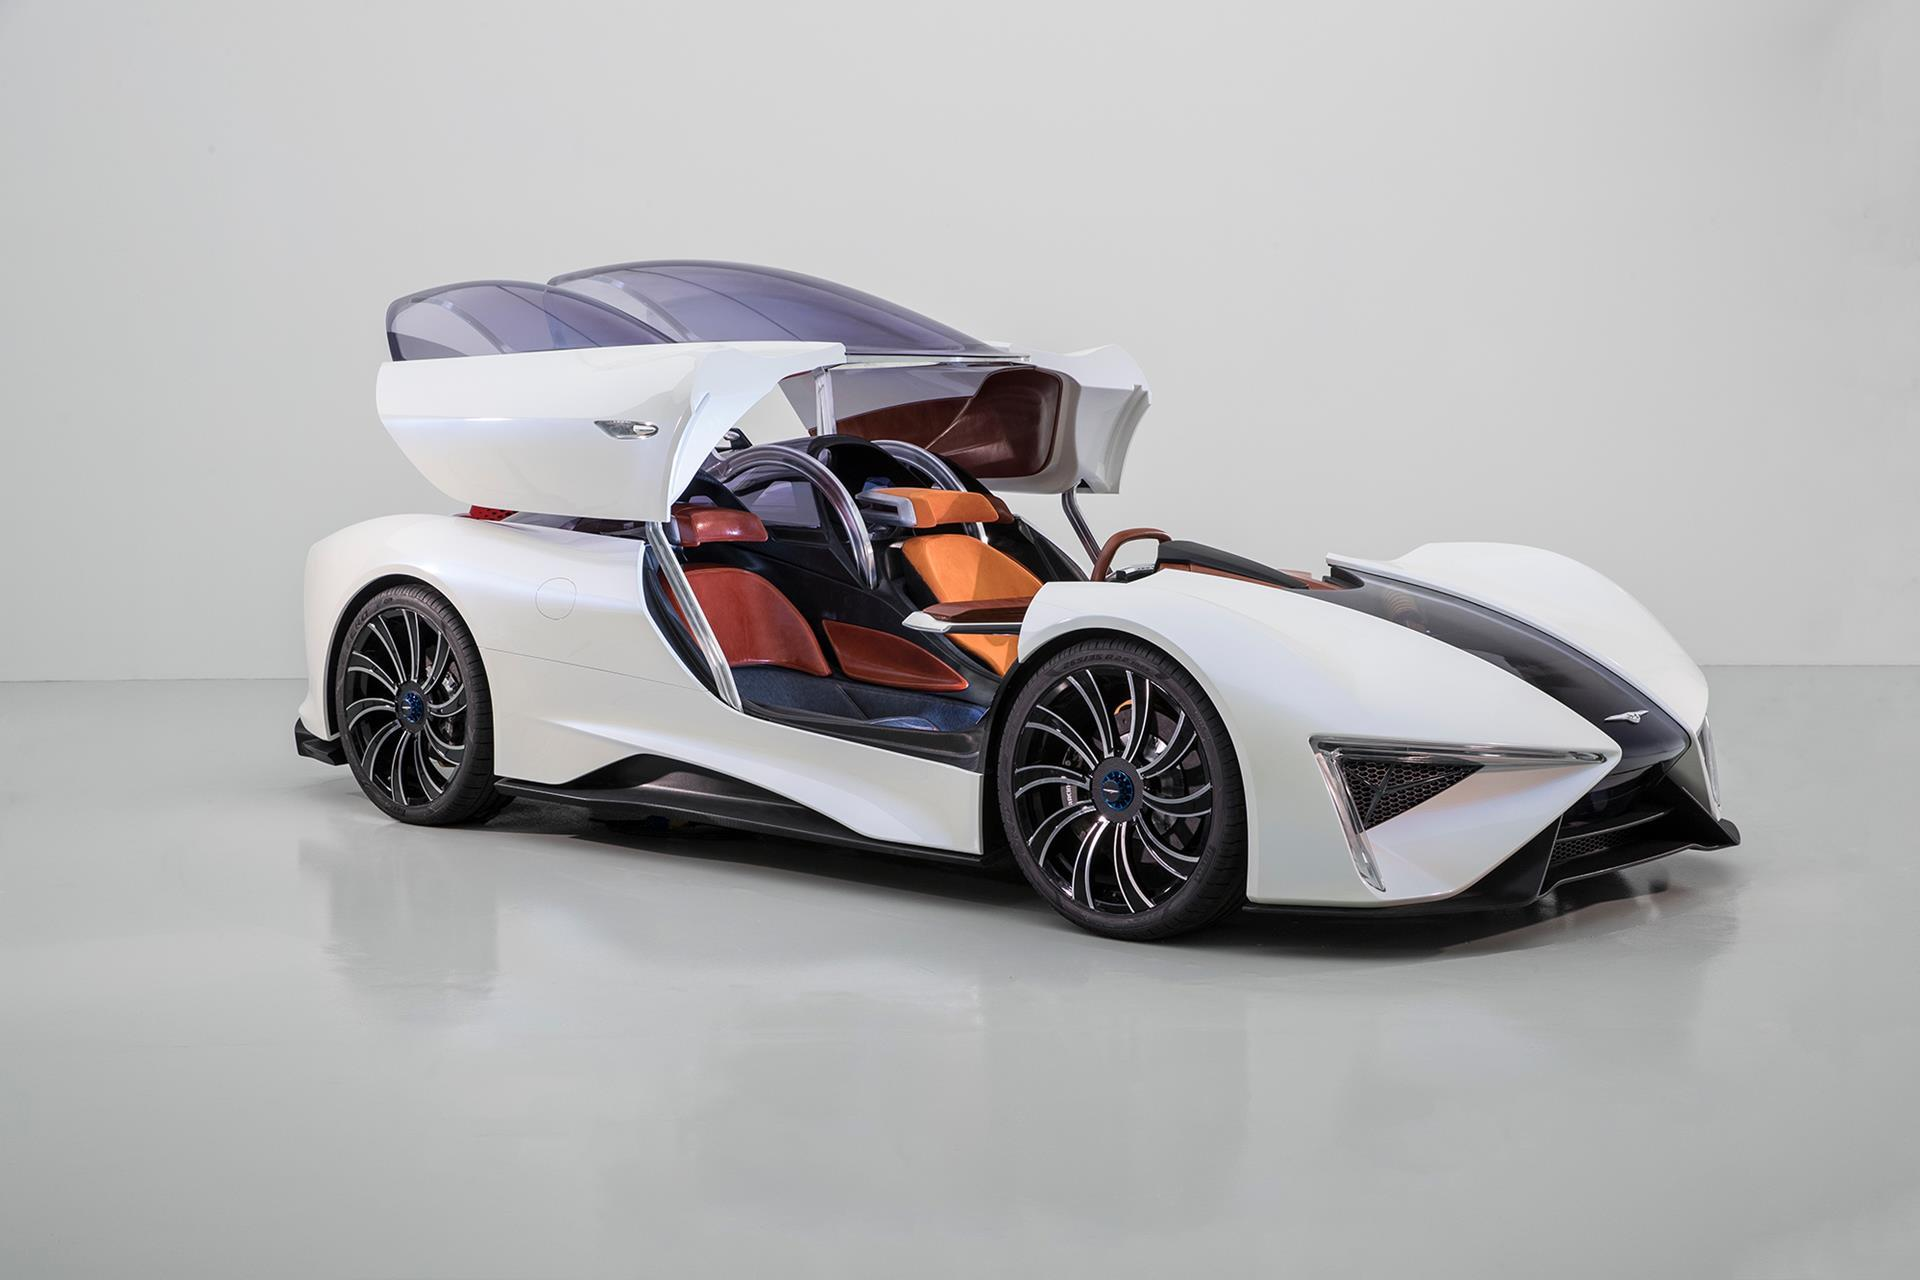 2017 Techrules Ren Supercar Concept News And Information